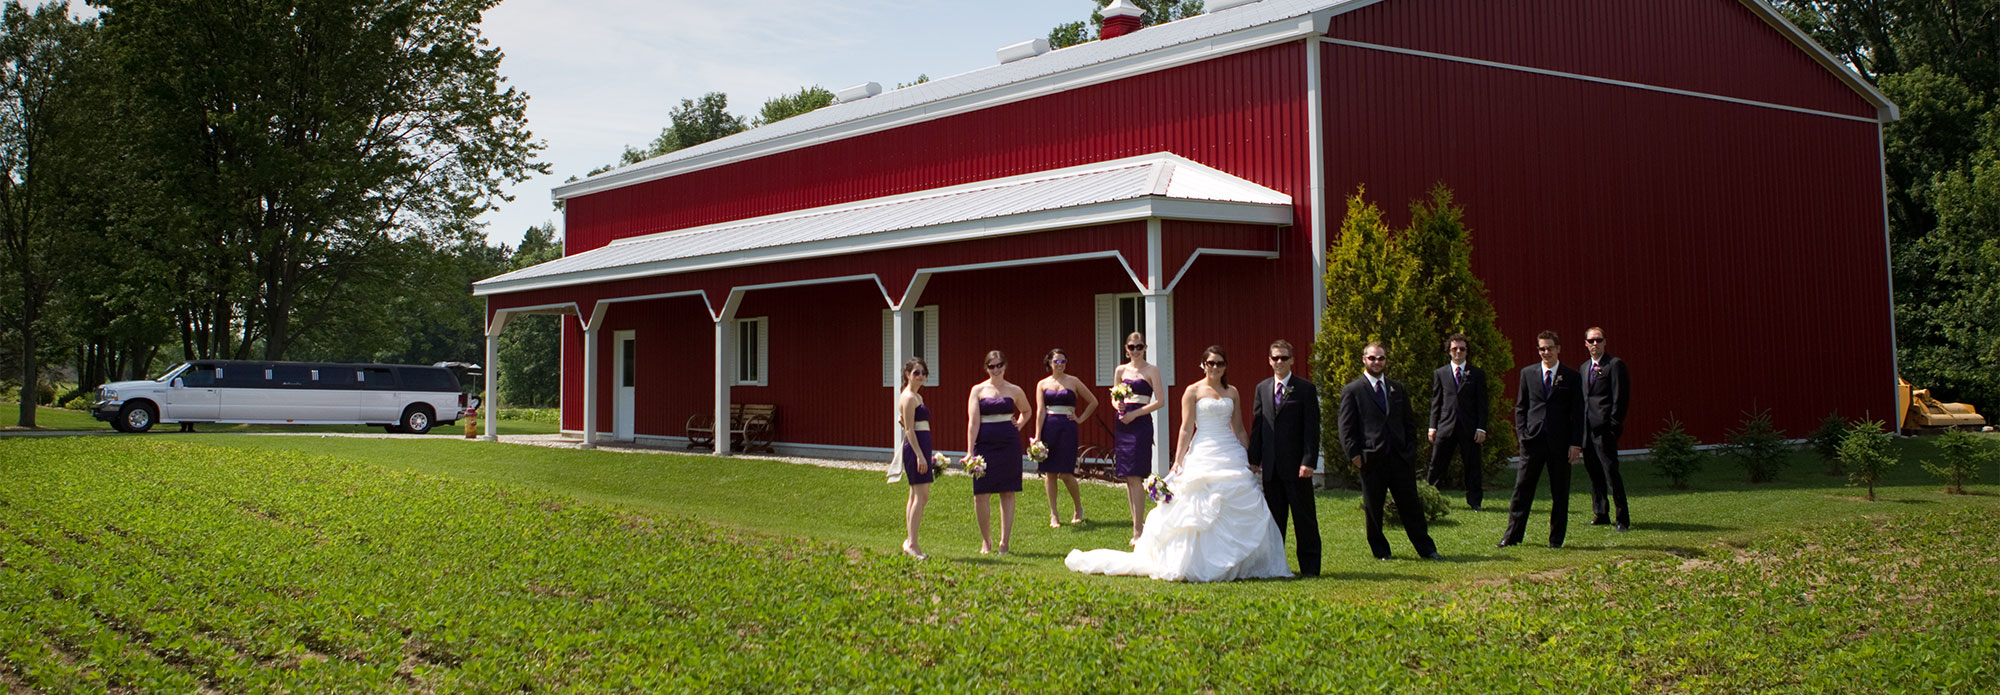 Wedding limbusine and red barn